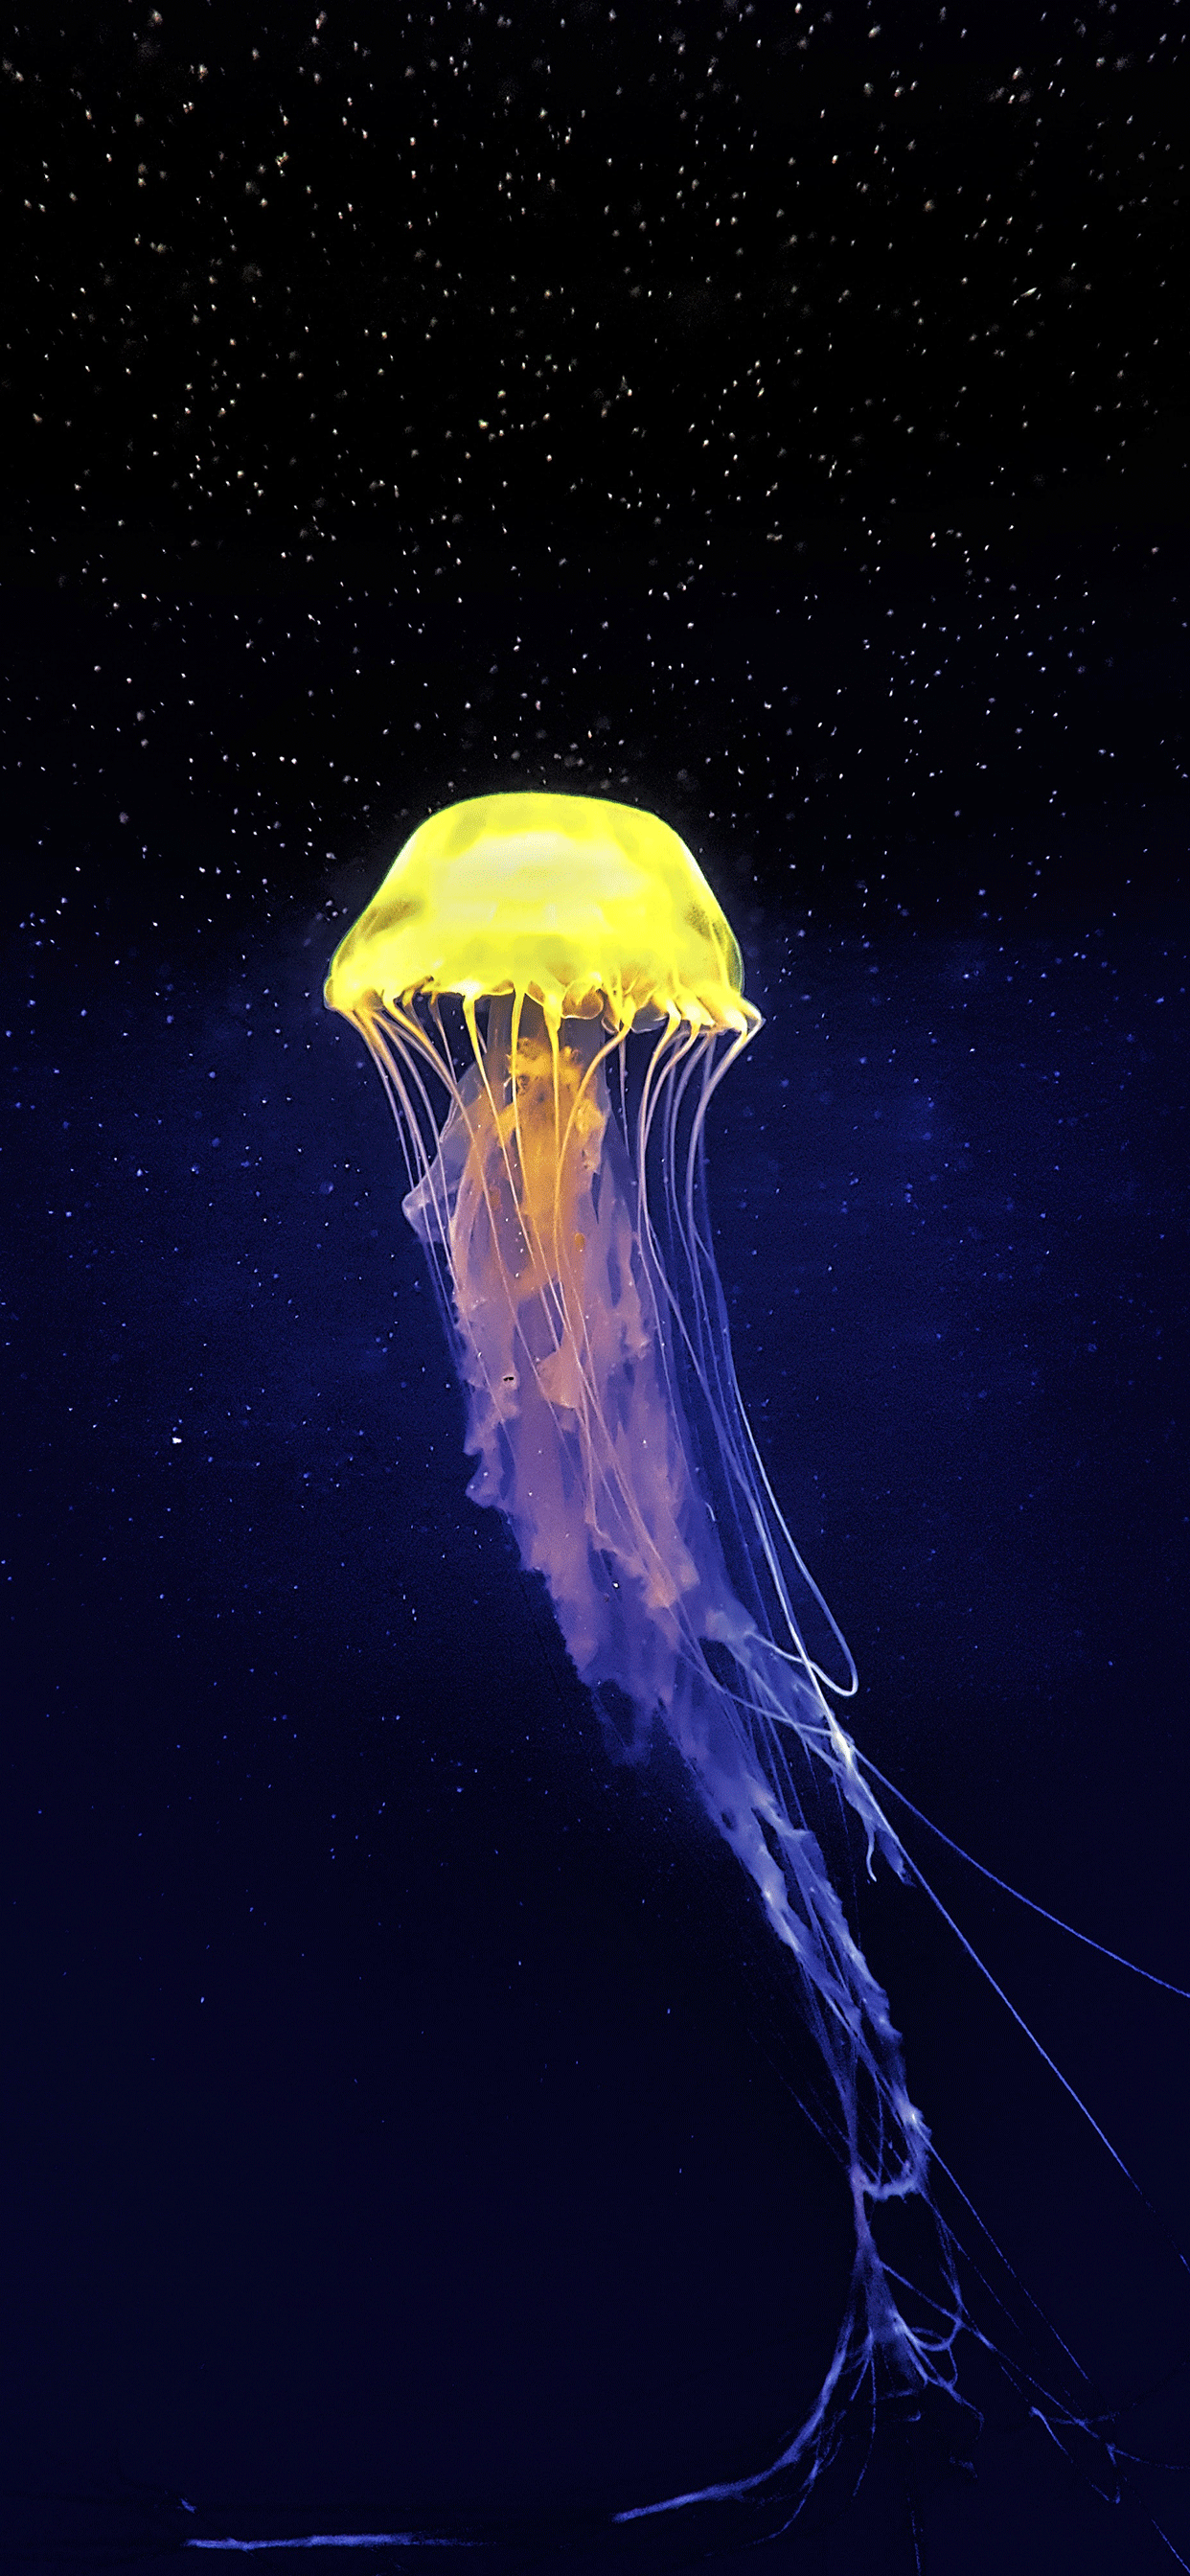 iPhone wallpapers jellyfish aquarium singapore Fonds d'écran iPhone du 26/03/2019